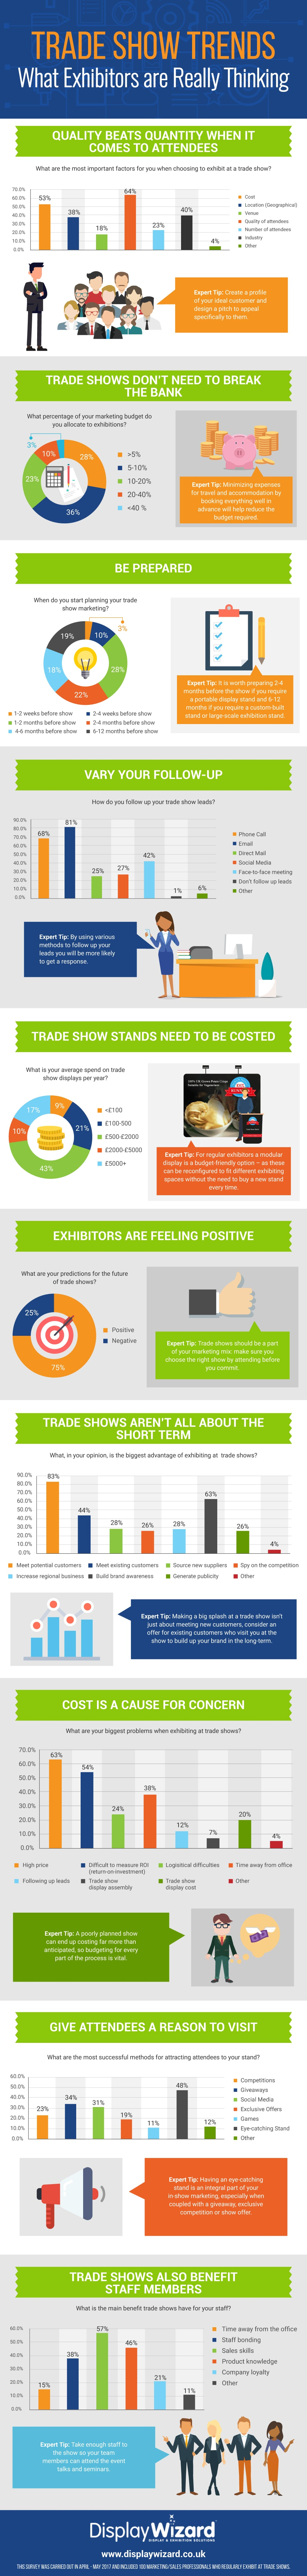 Trade Show Exhibitor Report Infographic